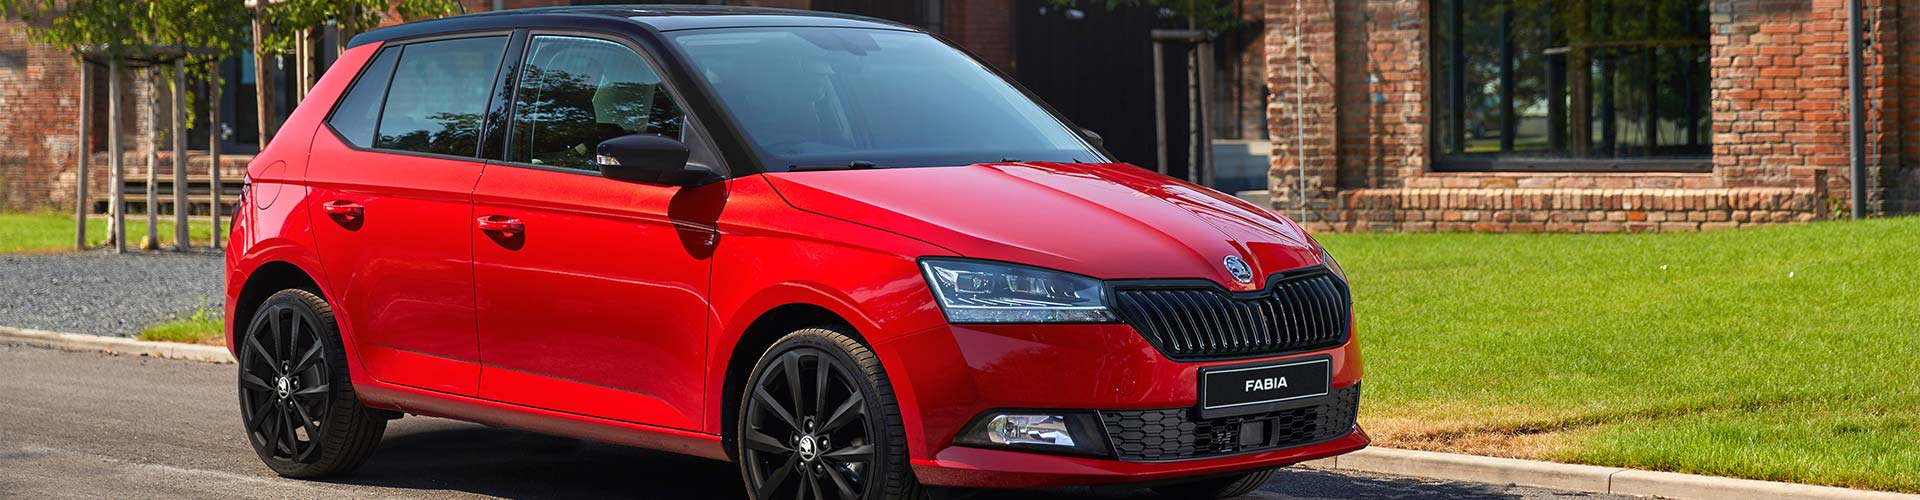 FABIA RUN-OUT Edition